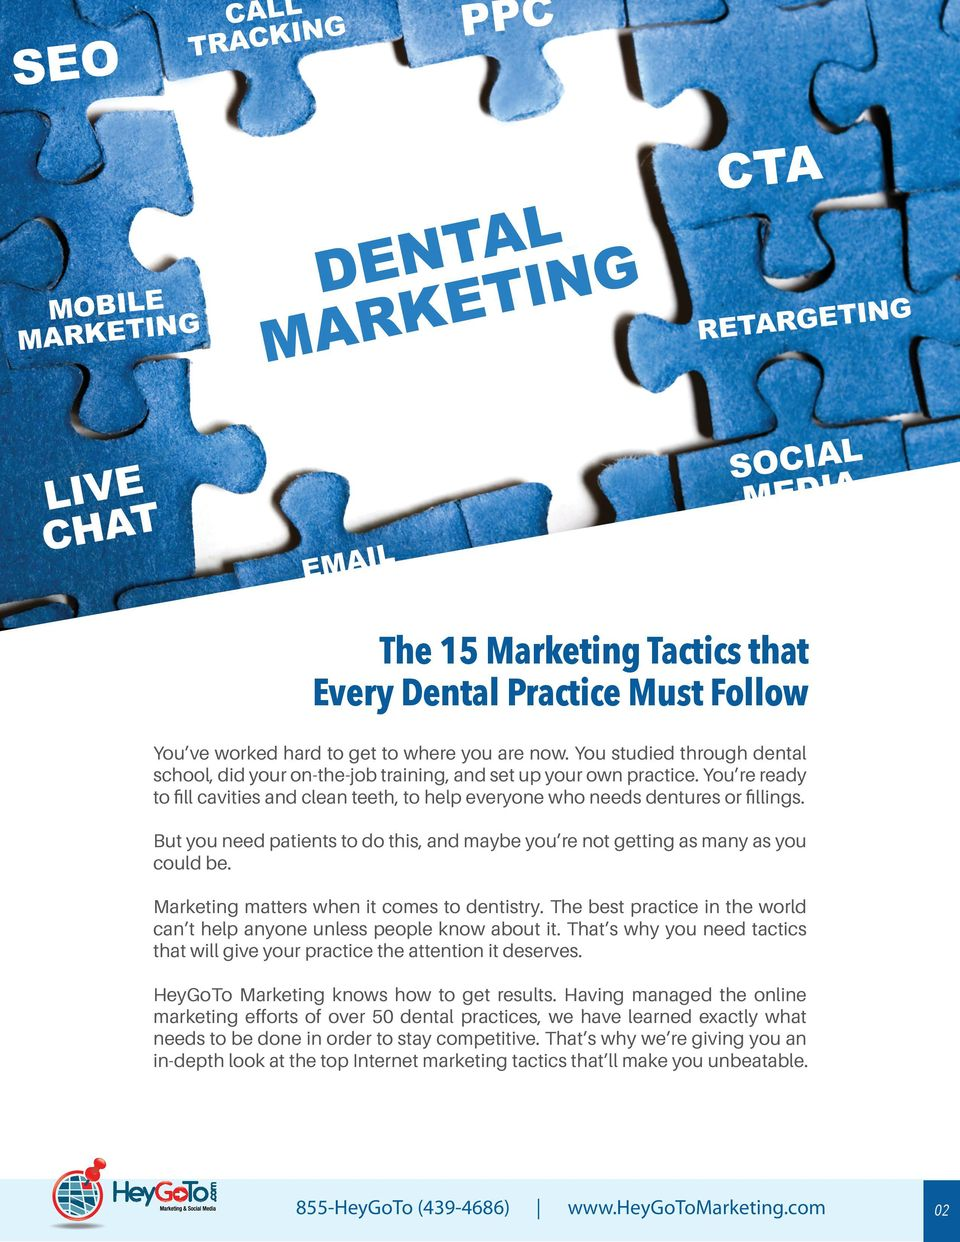 But you need patients to do this, and maybe you re not getting as many as you could be. Marketing matters when it comes to dentistry.